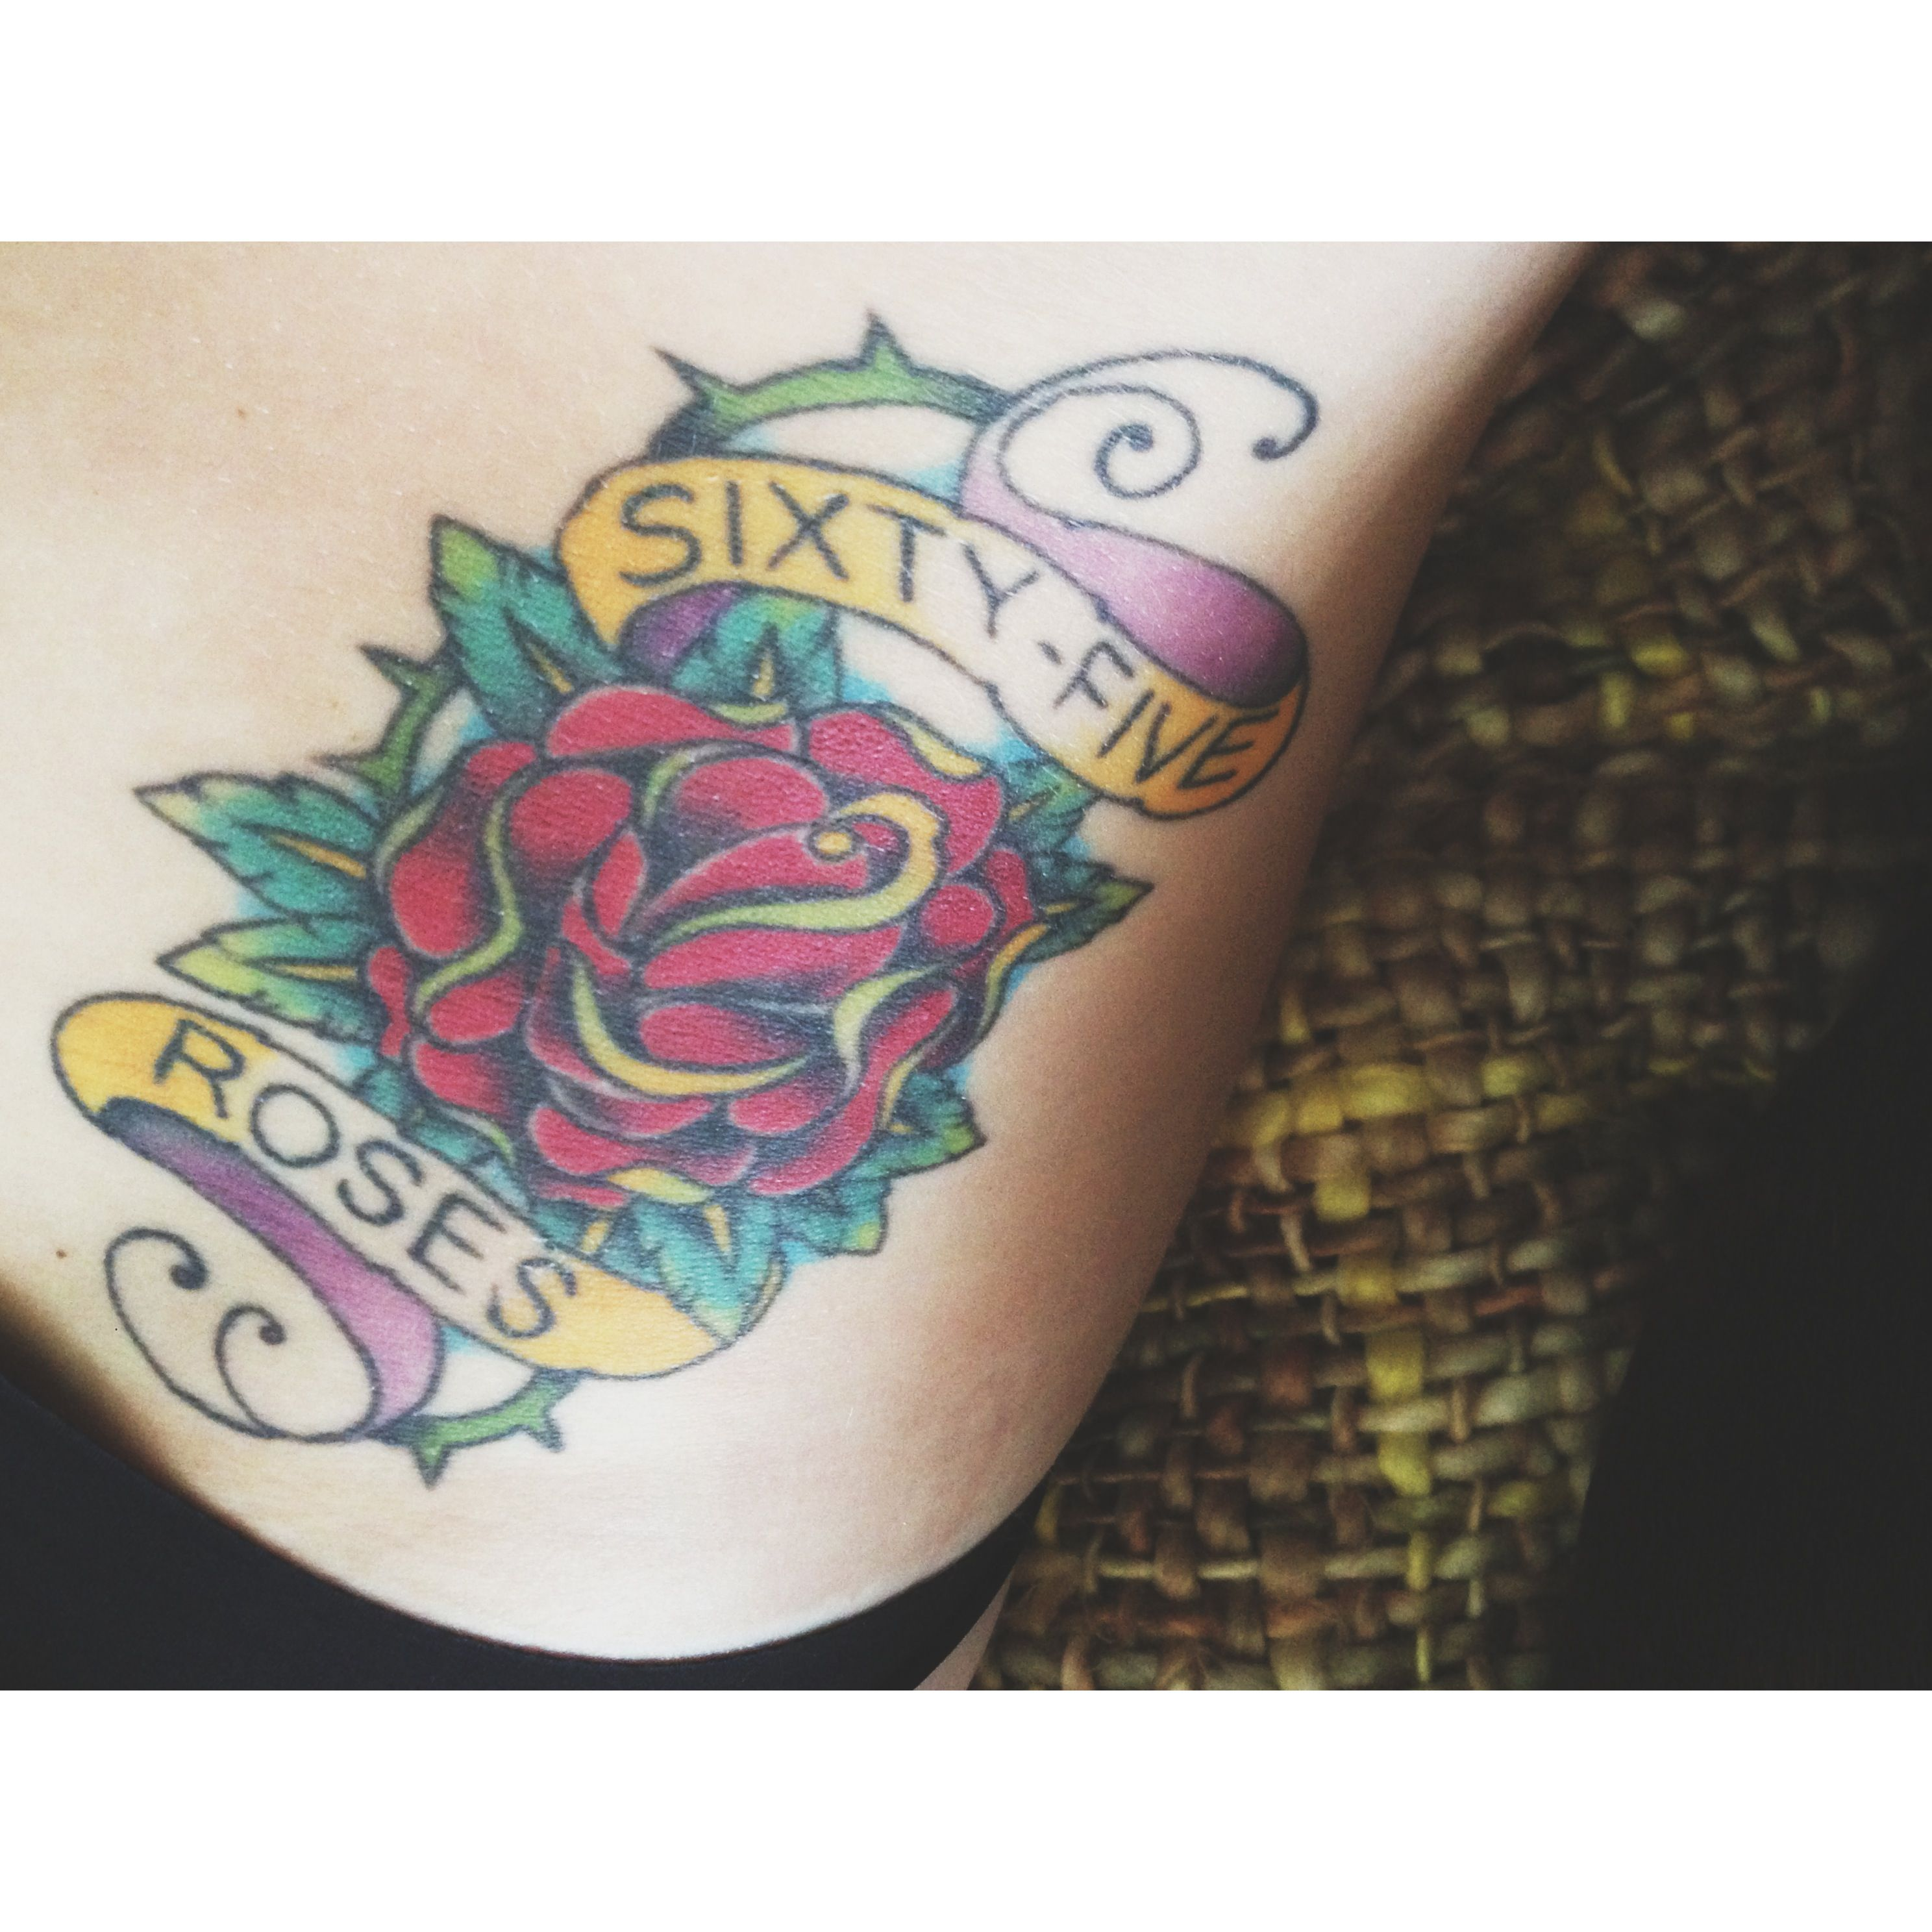 65 Roses Tattoo Cystic Fibrosis Awareness Ideas And Designs